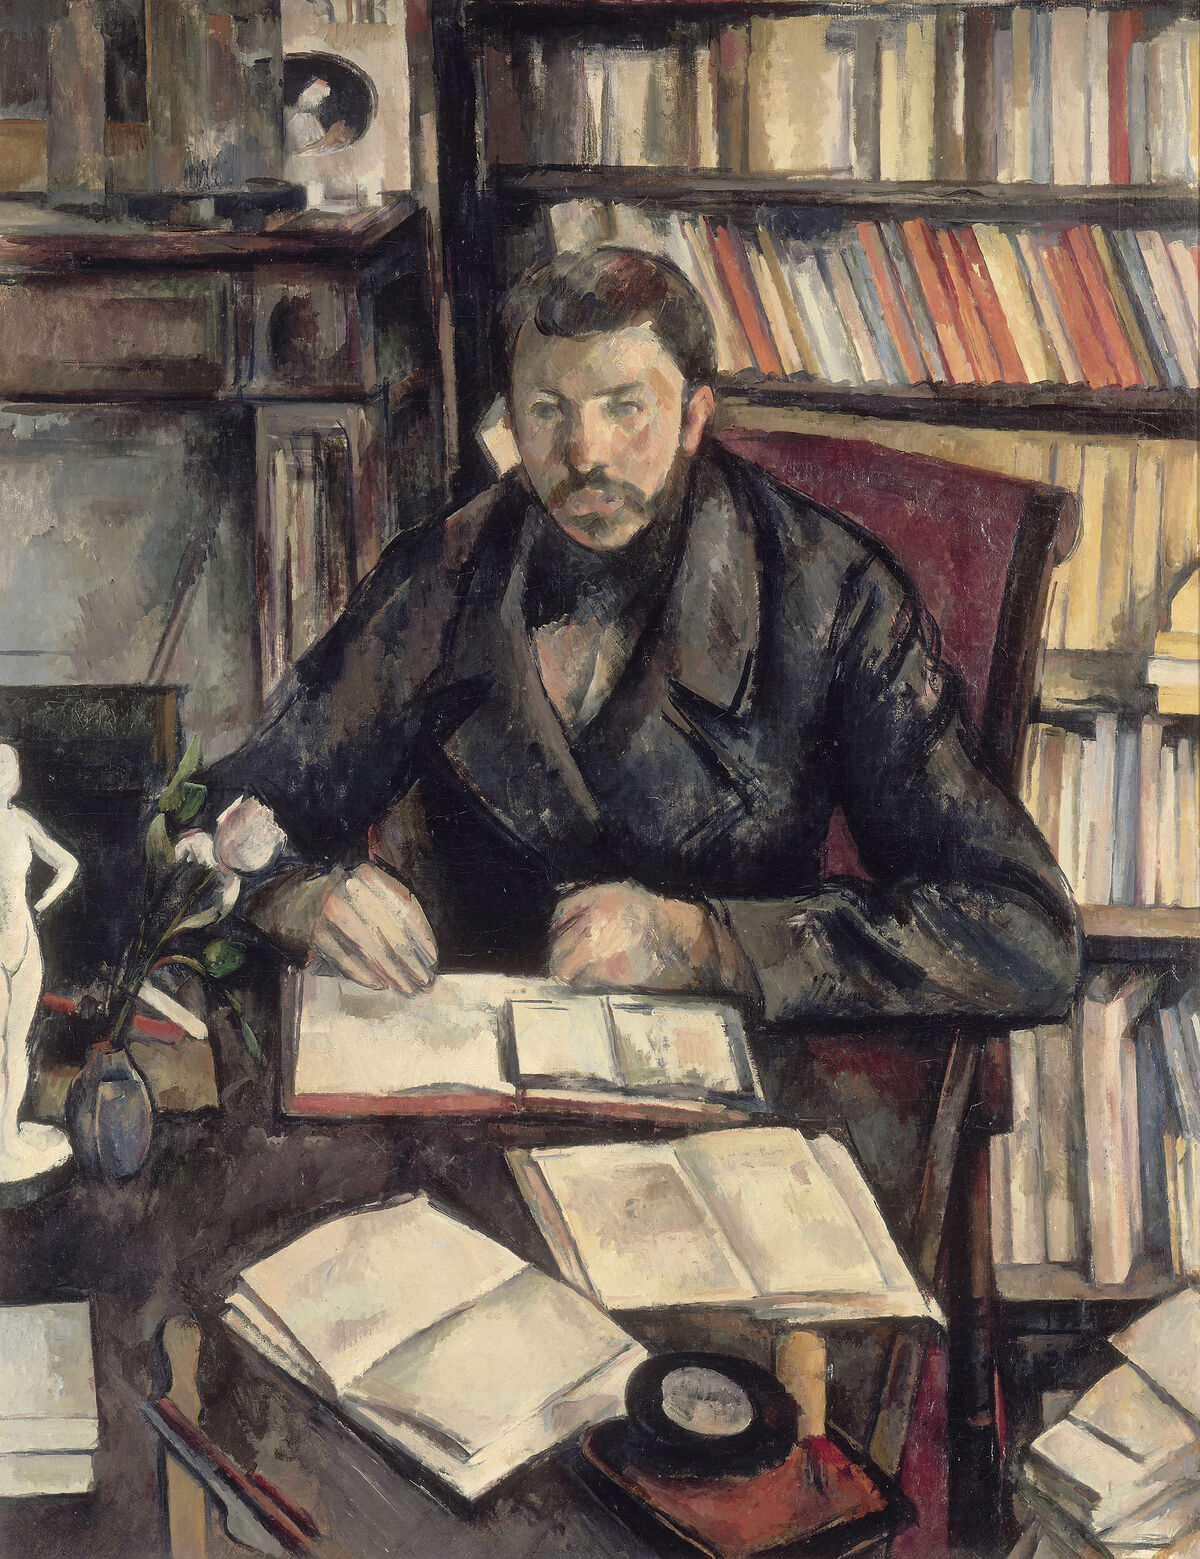 Paul Cézanne, Gustave Geffroy, c. 1895 - 1896. Courtesy of the National Gallery of Art.